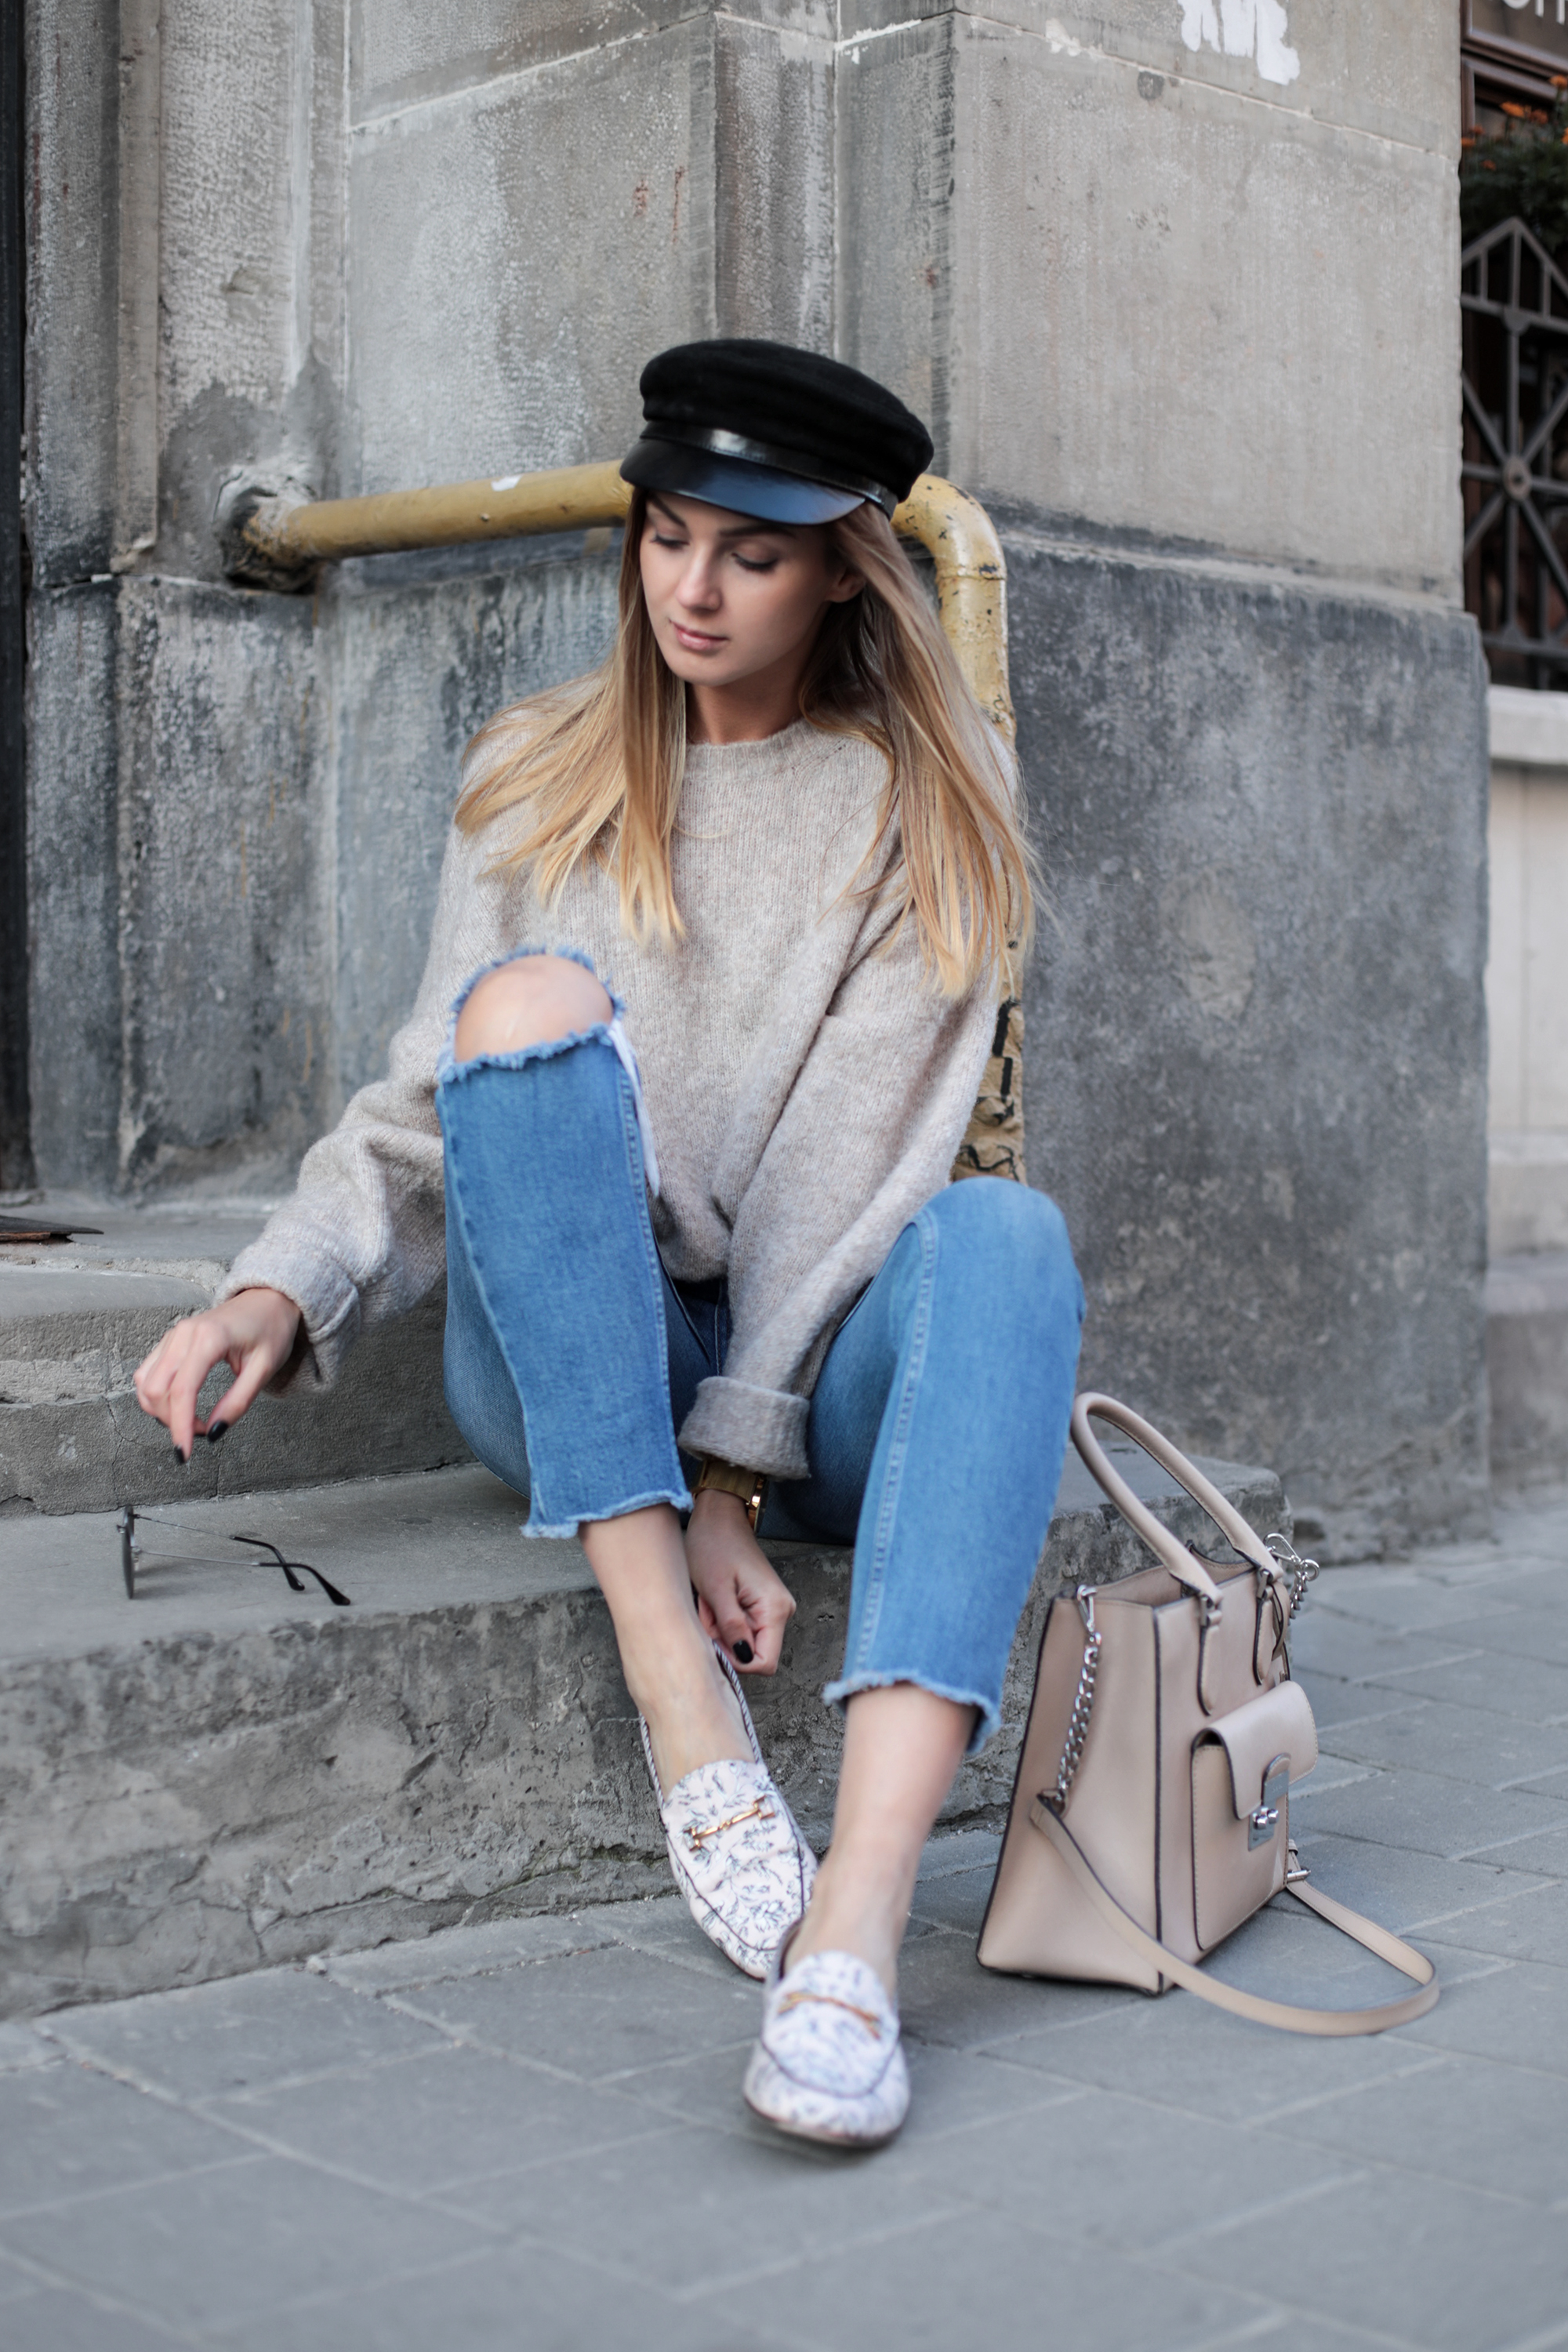 beige-knit-sweater-outfit-ideas-street-style